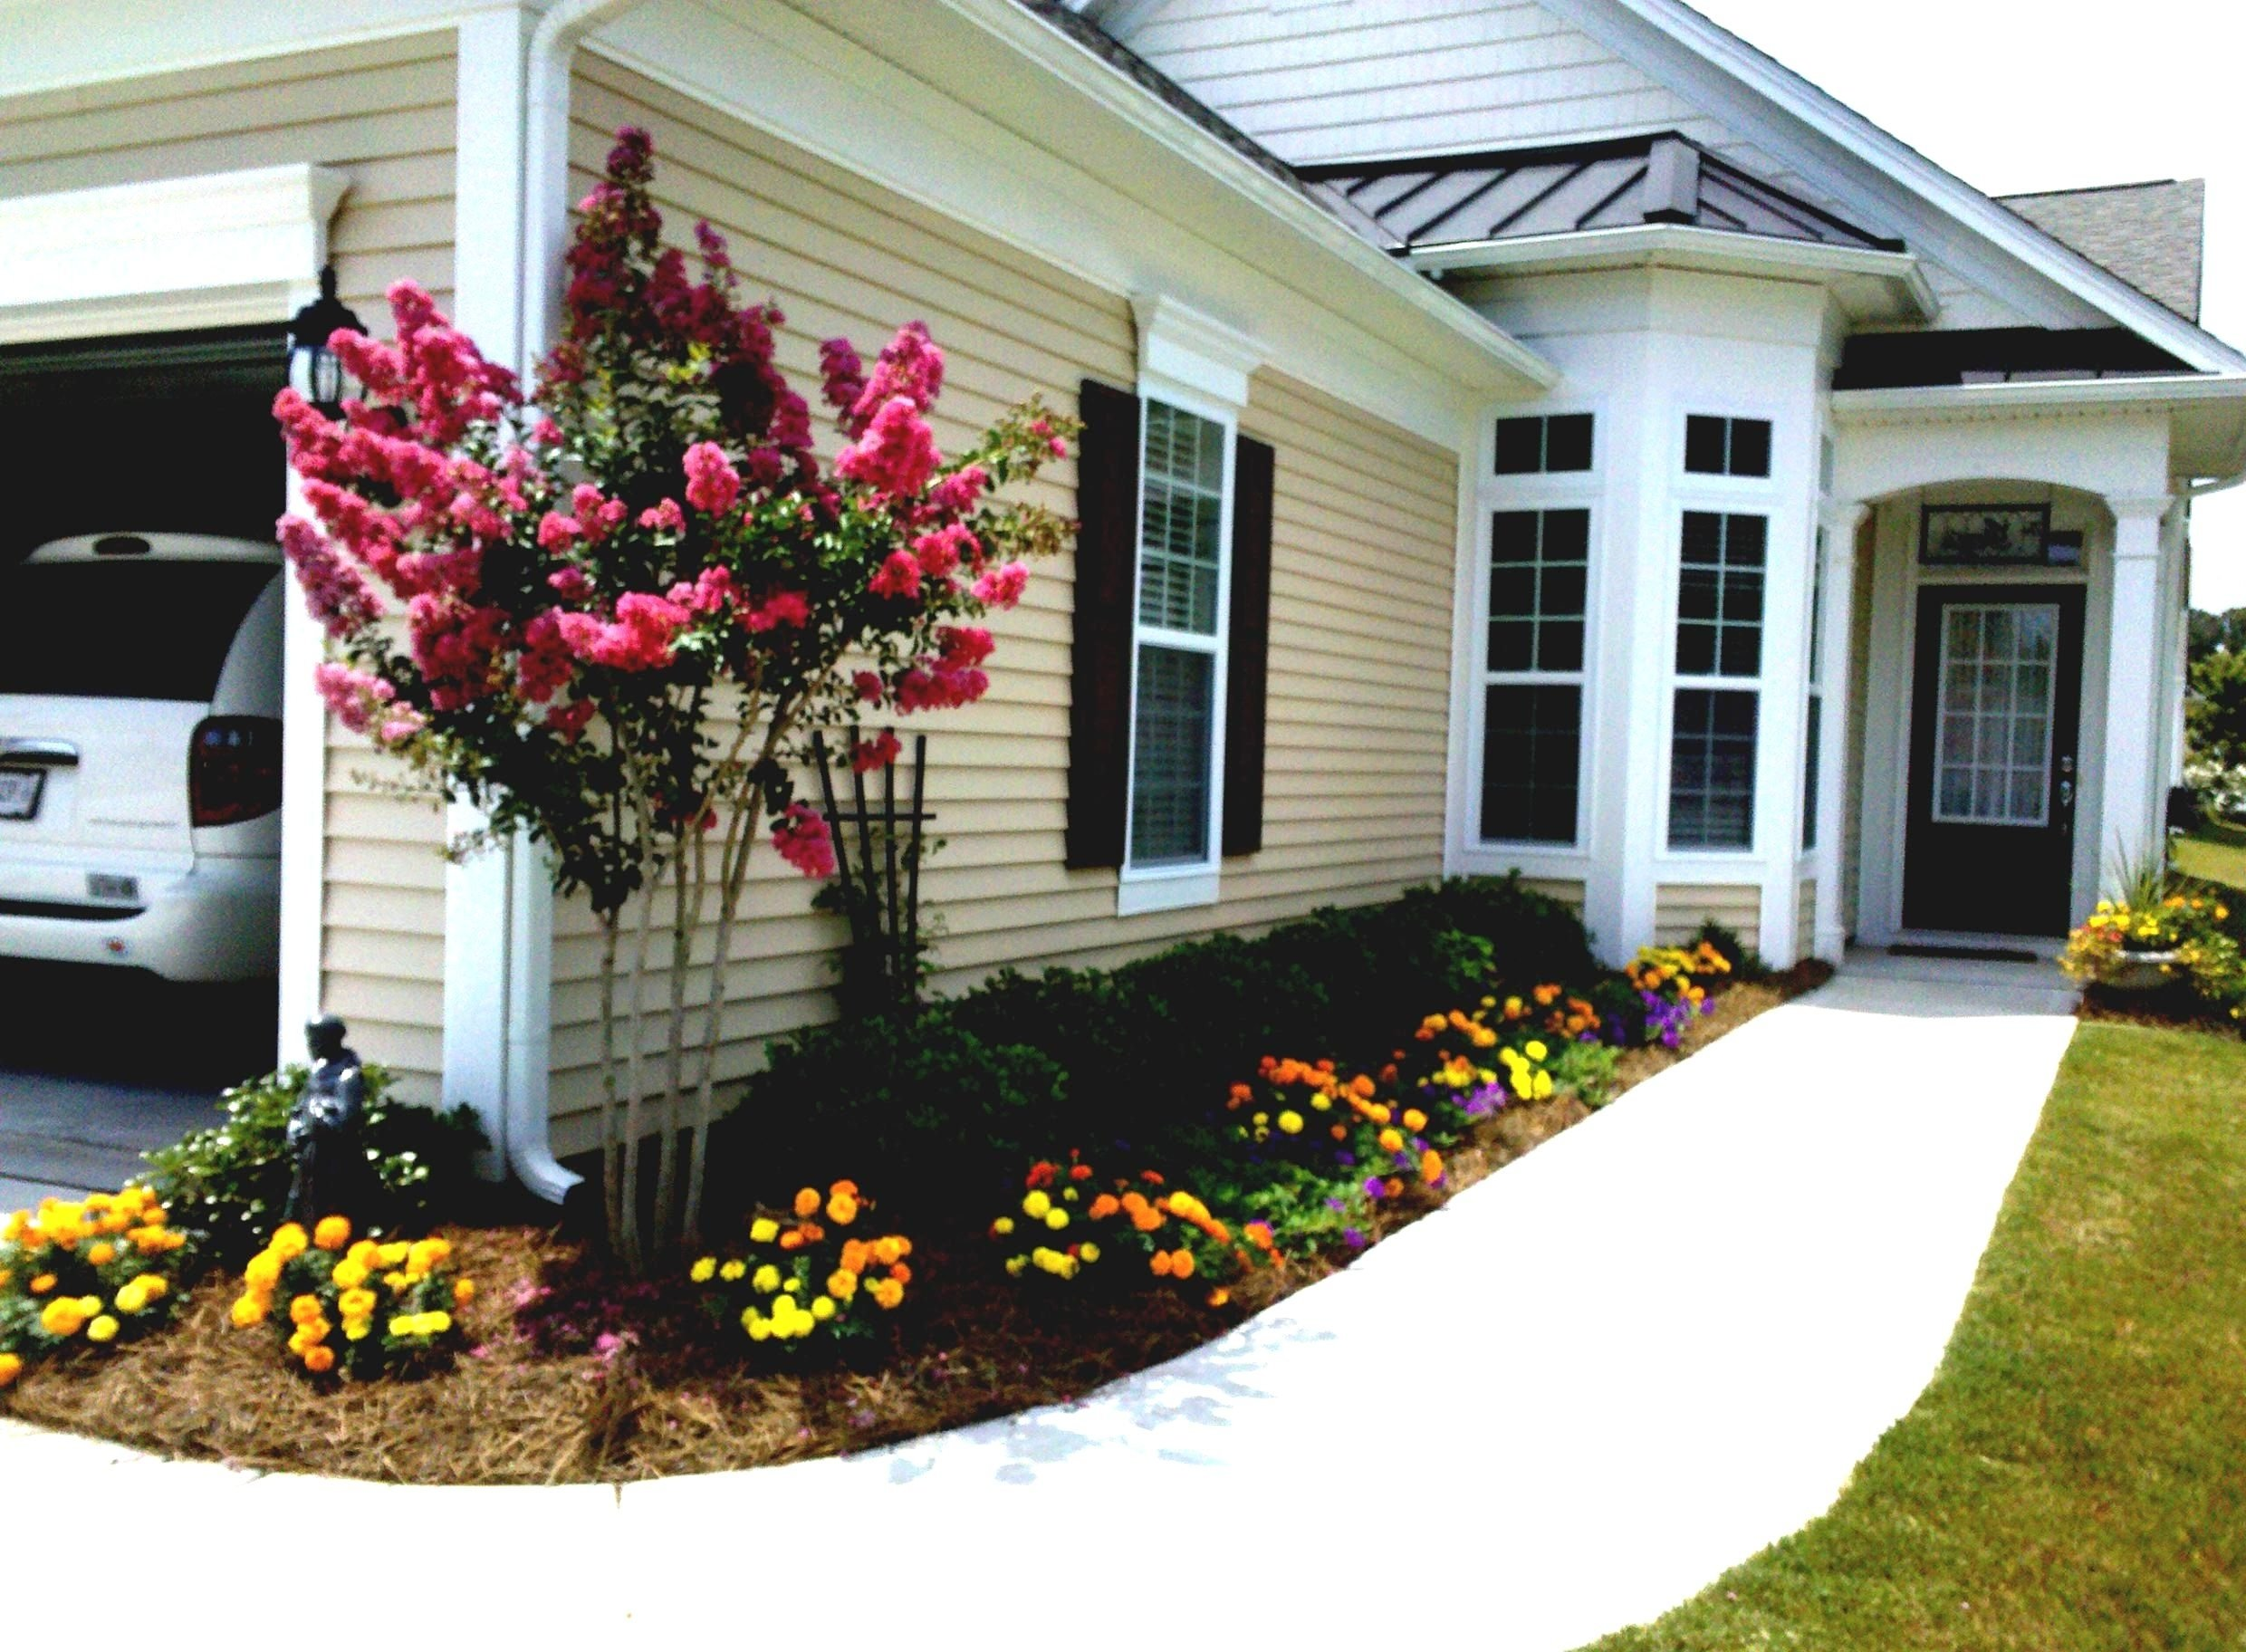 10 Stylish Simple Front Yard Landscaping Ideas On A Budget simple front yard landscaping on a budget the garden inspirations 2021